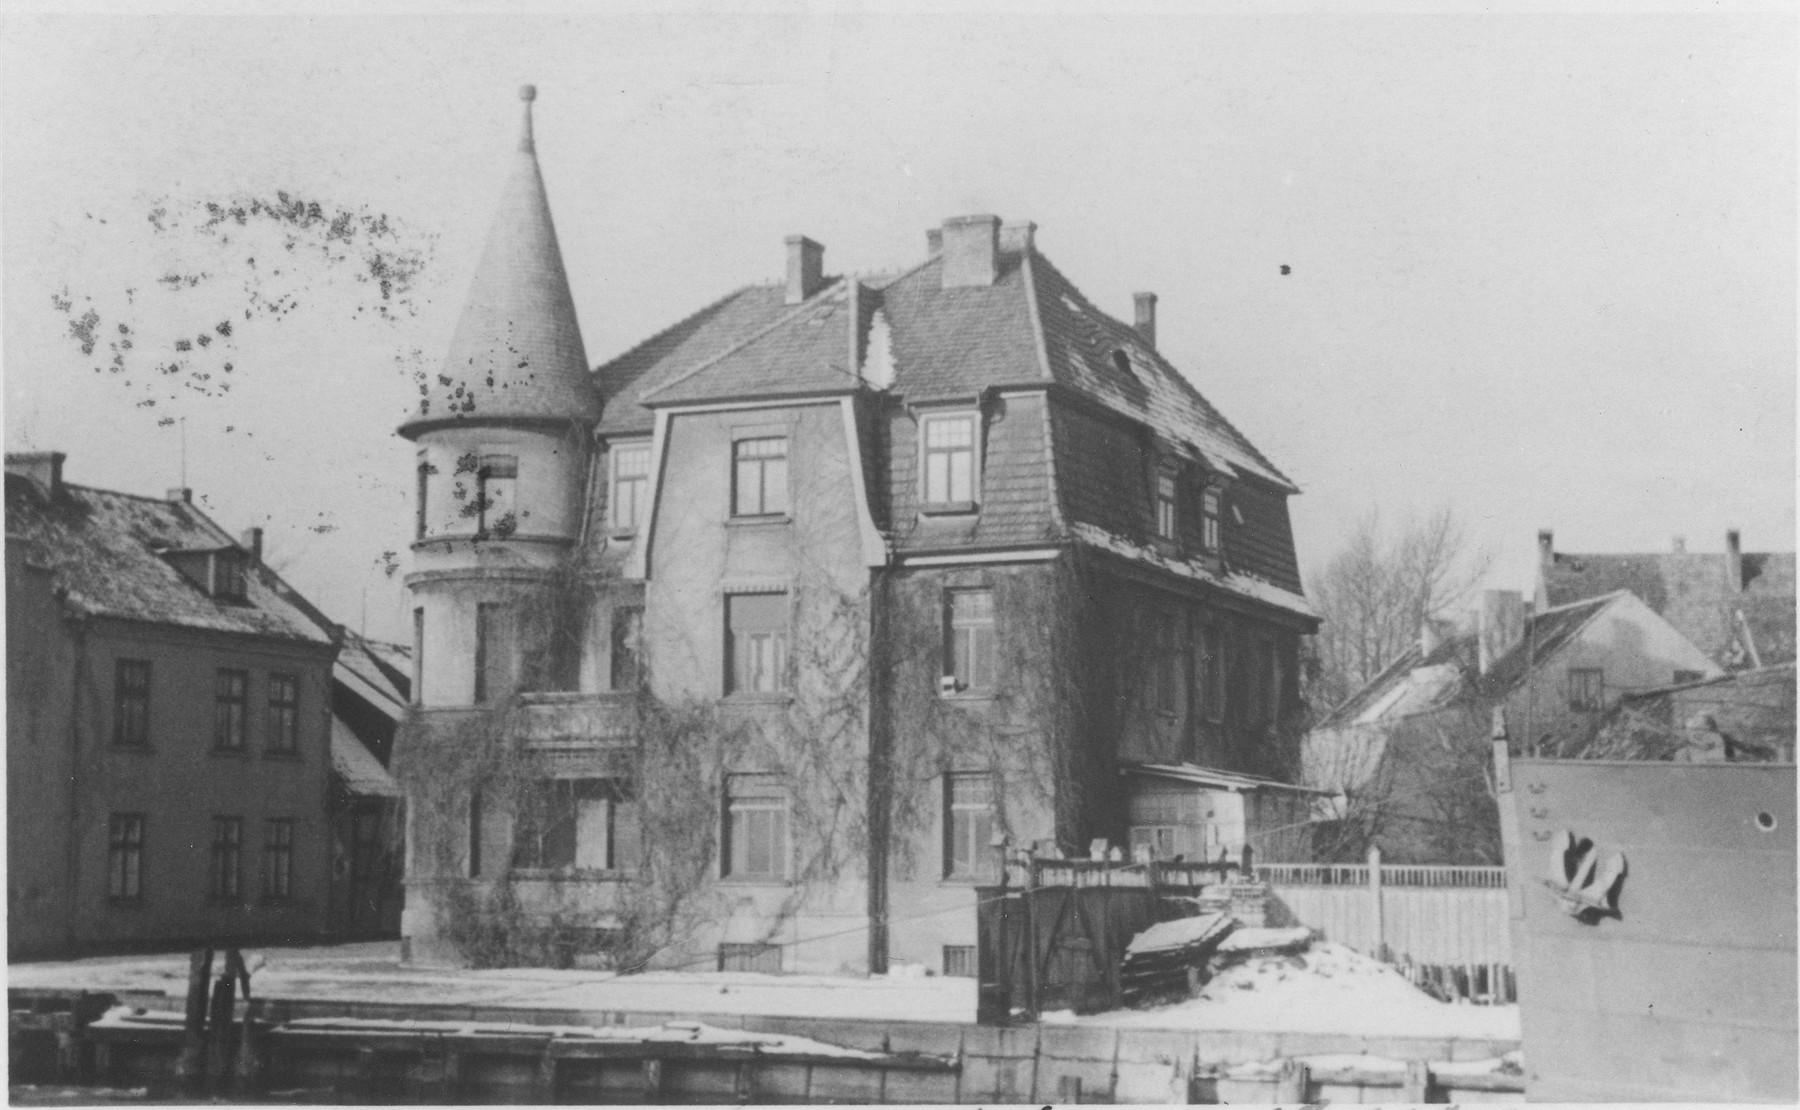 View of the Segalowitz family home in Memel.  They lived on the middle floor.